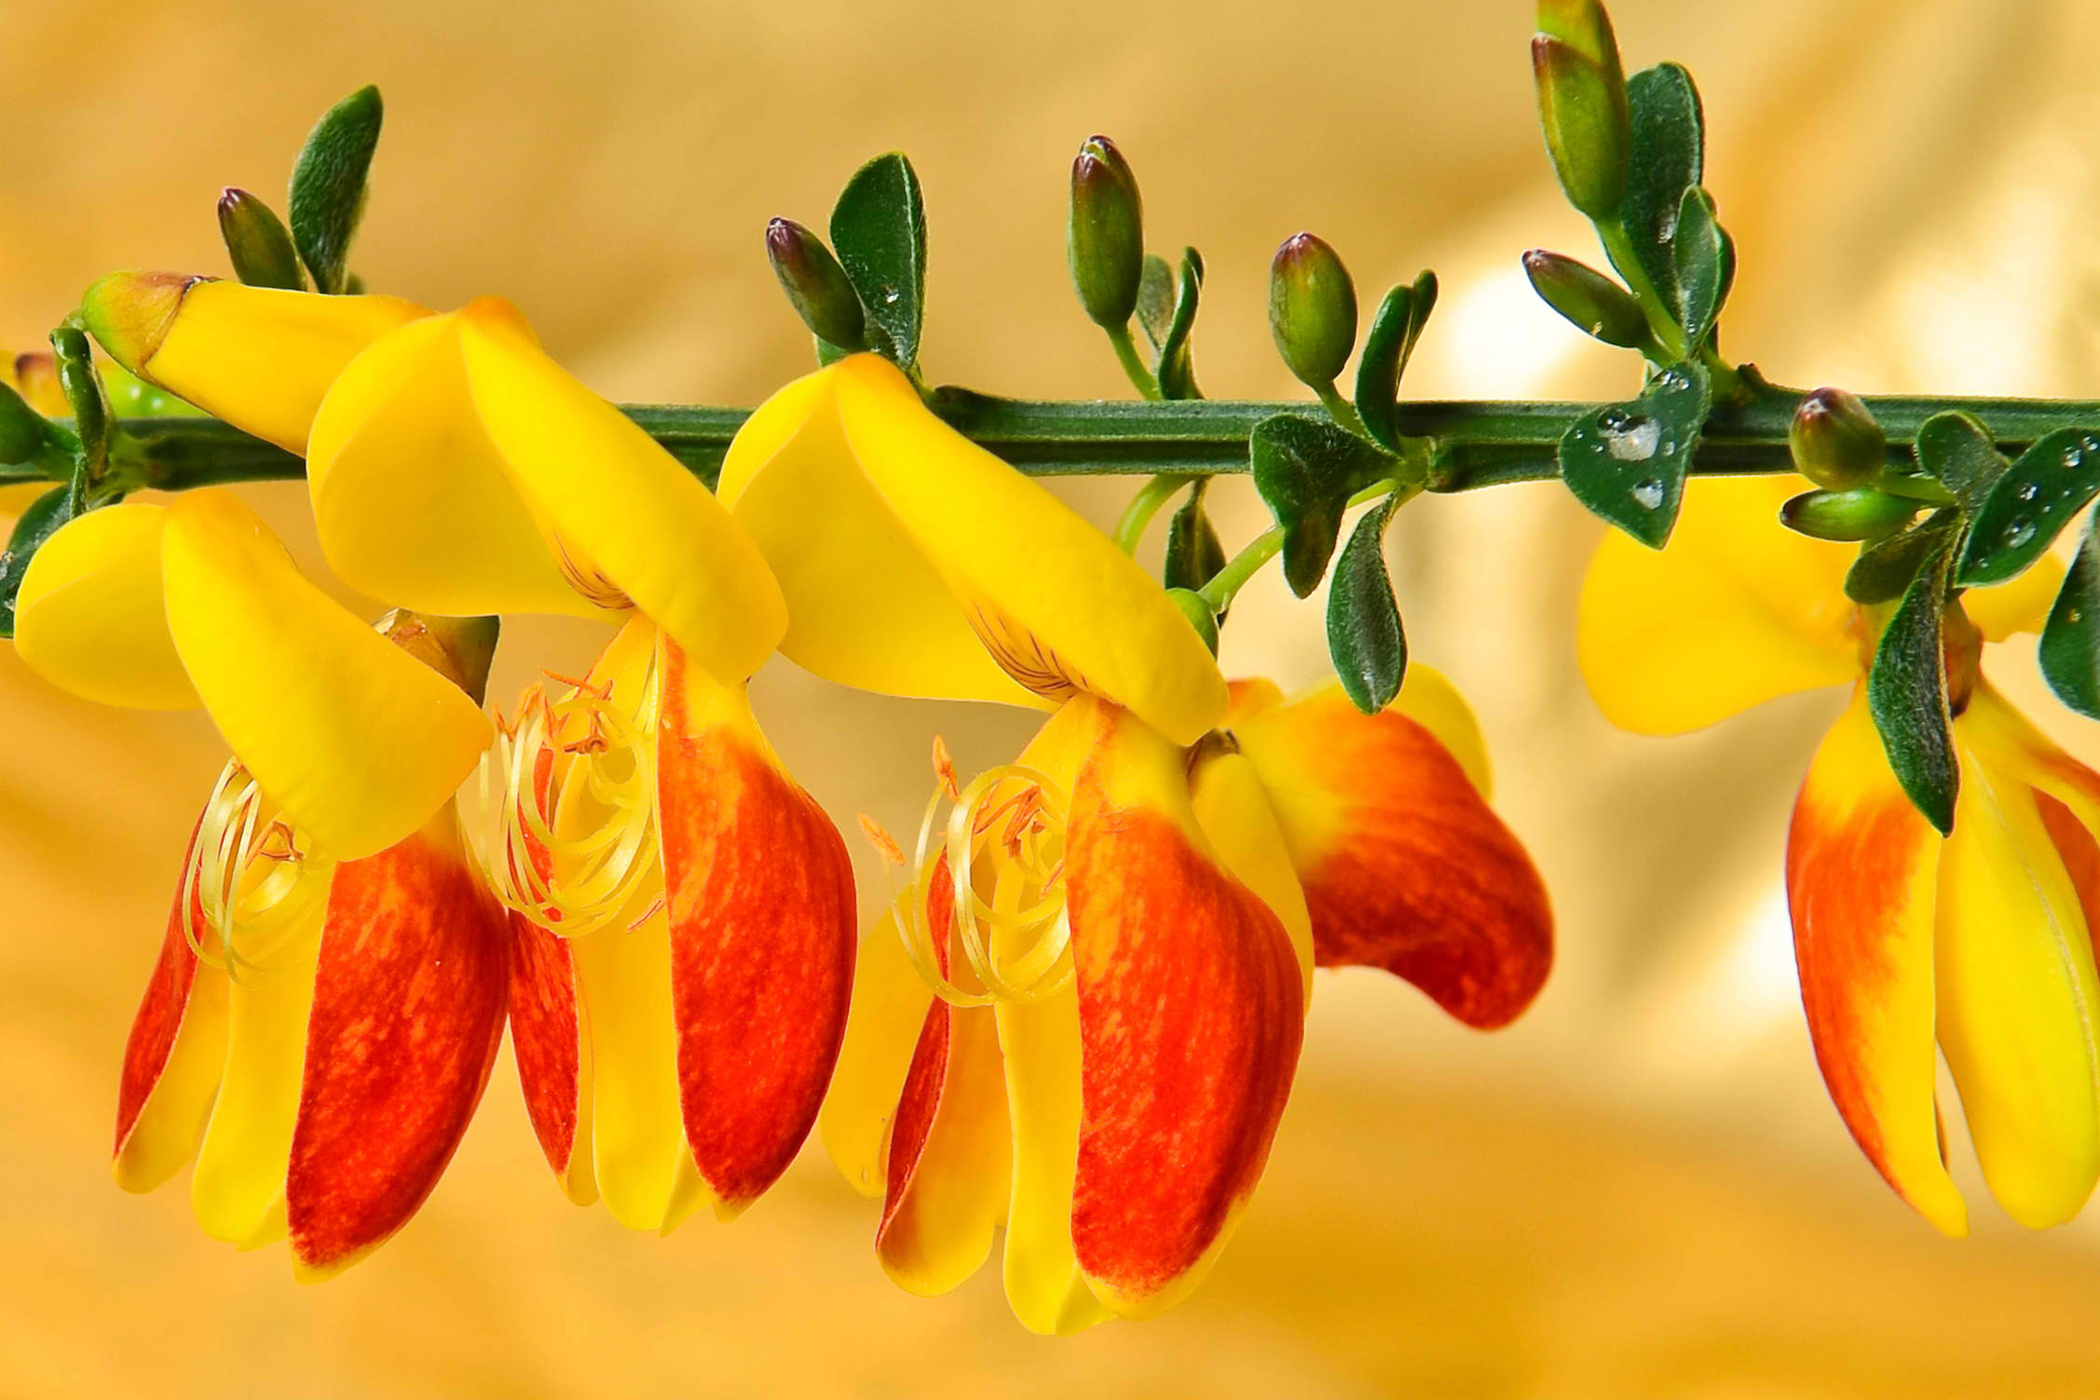 Scotch Broom Poisoning in Cats